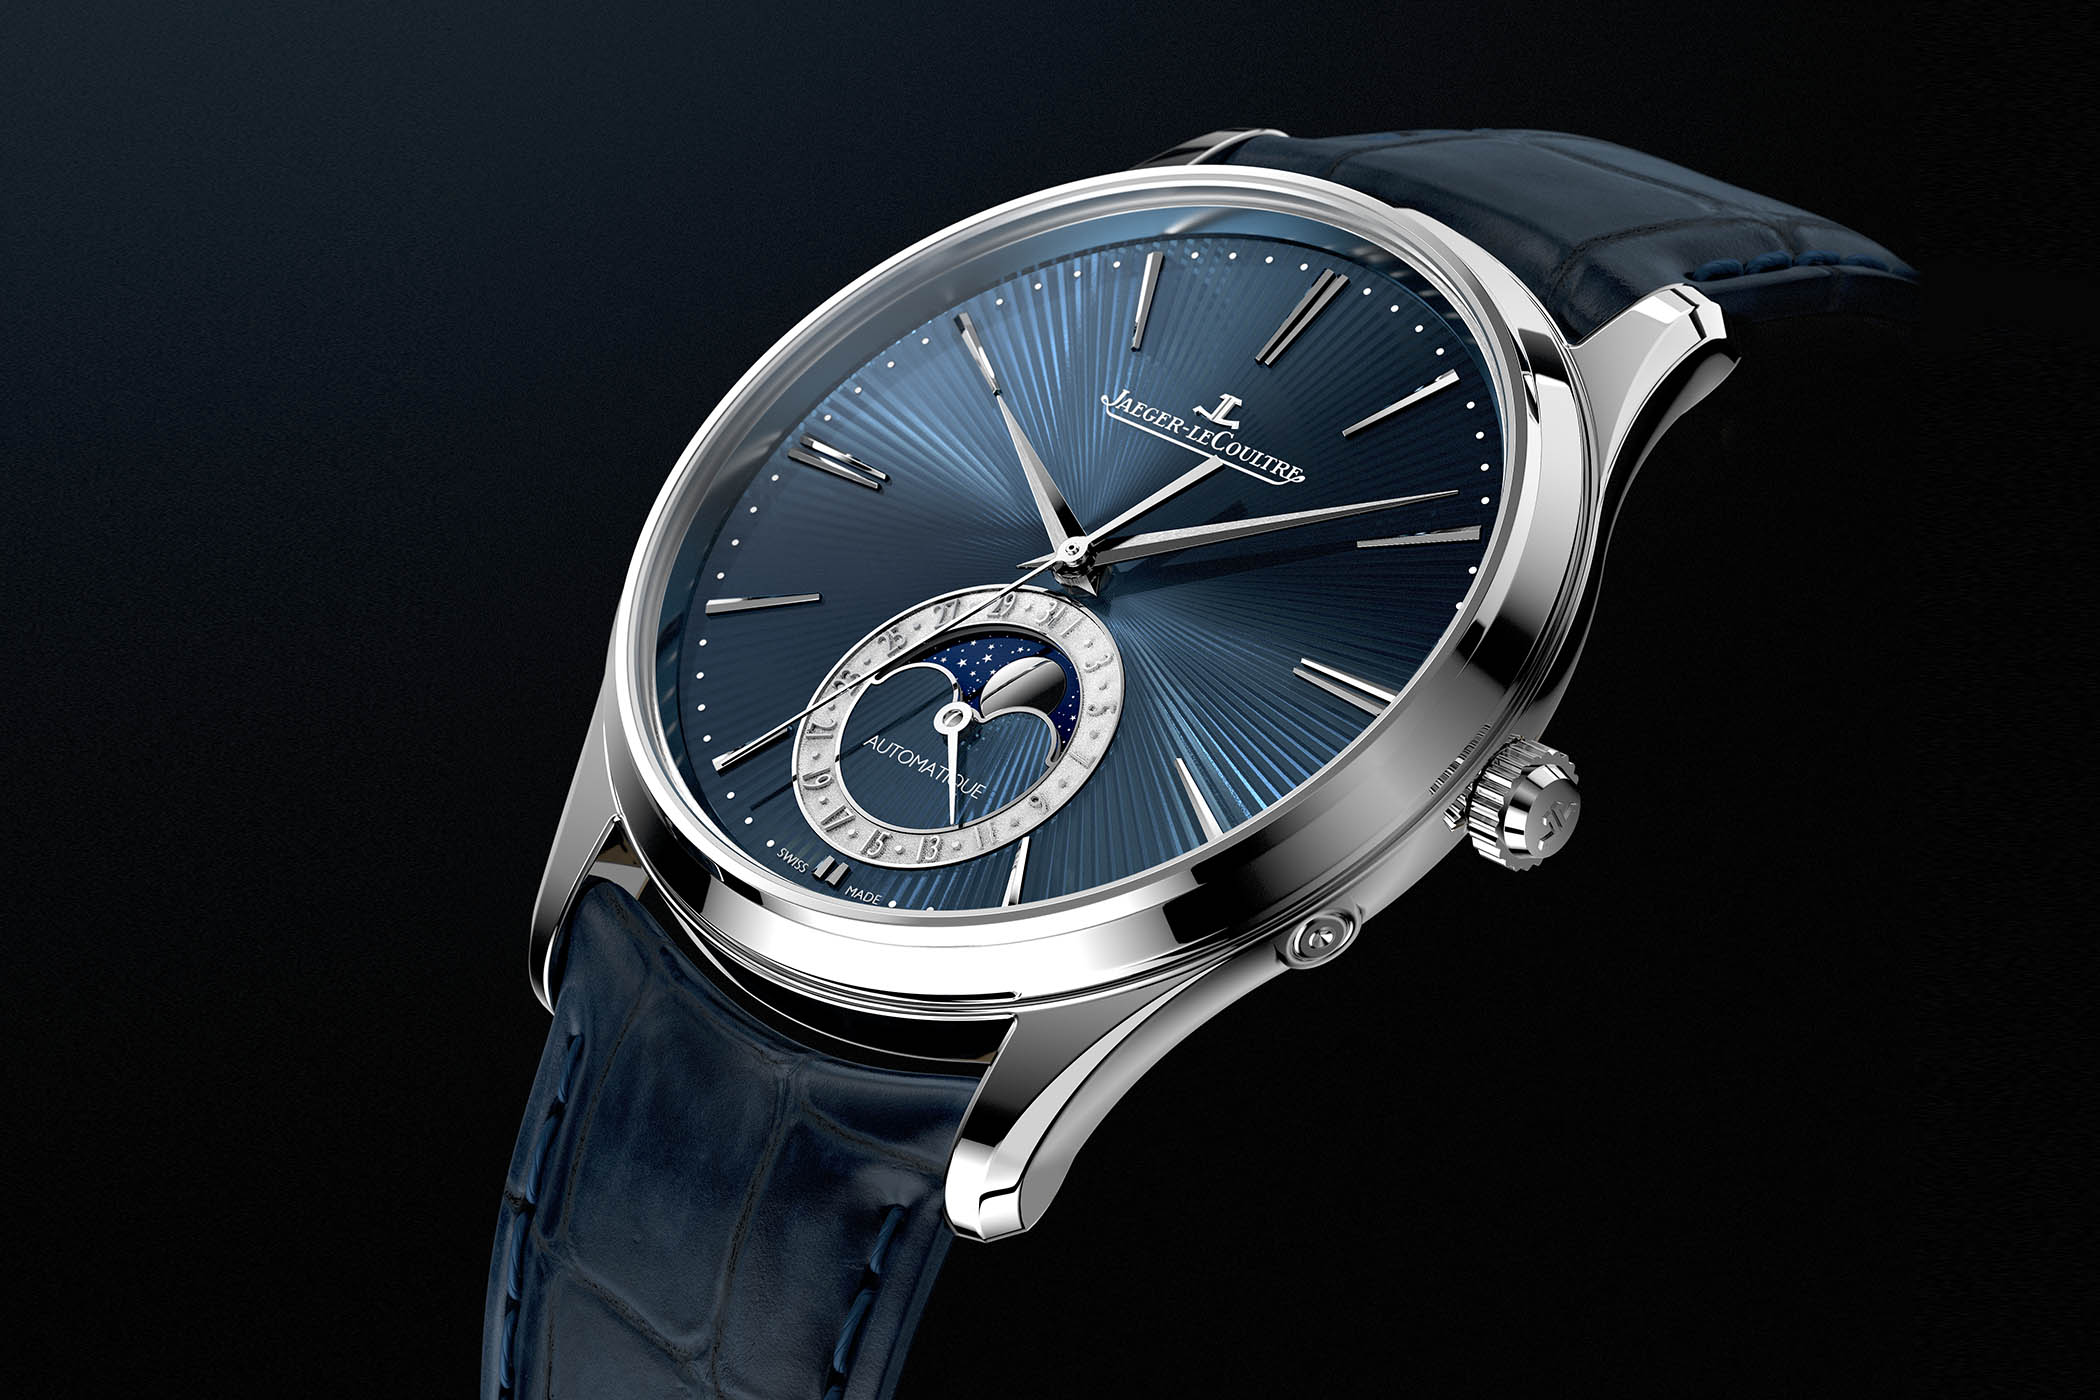 SIHH 2019 - Jaeger-LeCoultre Master Ultra-Thin Moon Enamel